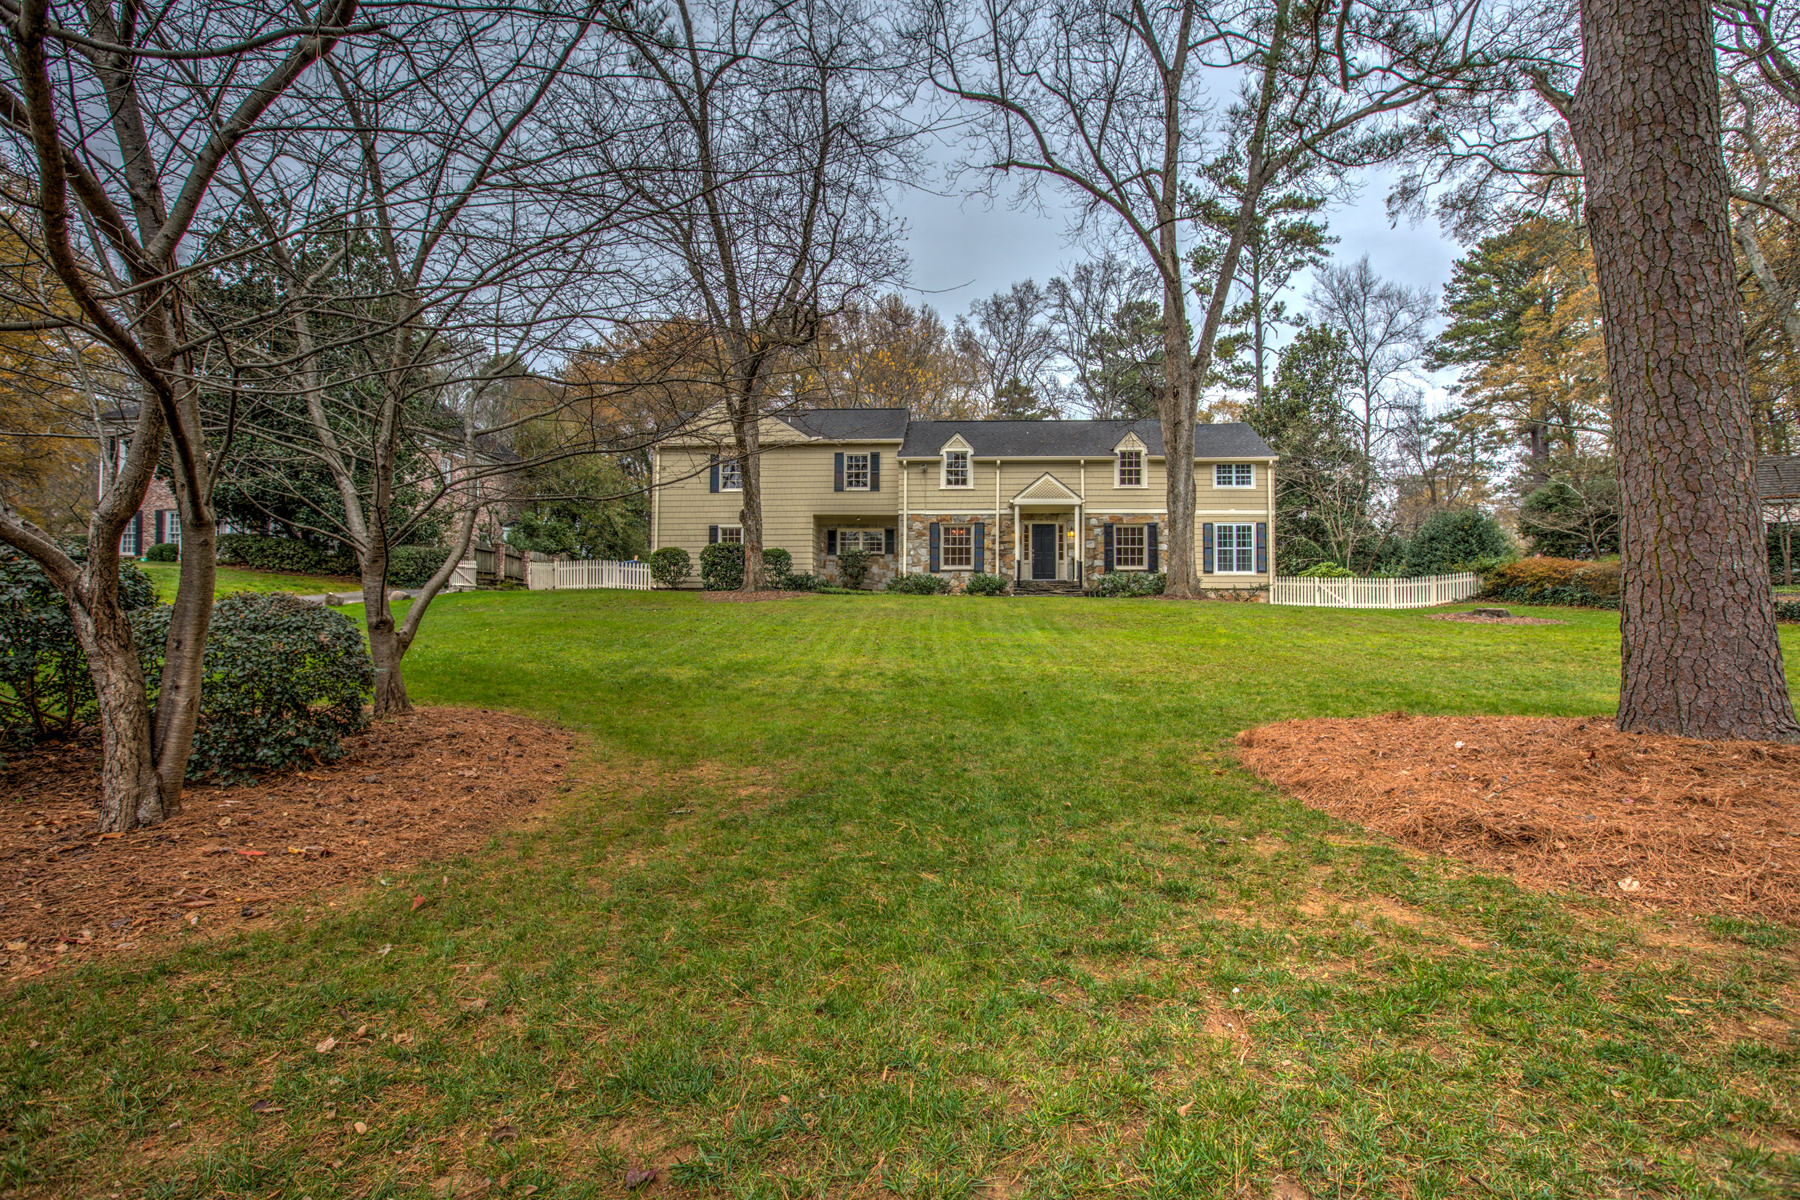 Property For Sale at Desirable Chastain Park Location